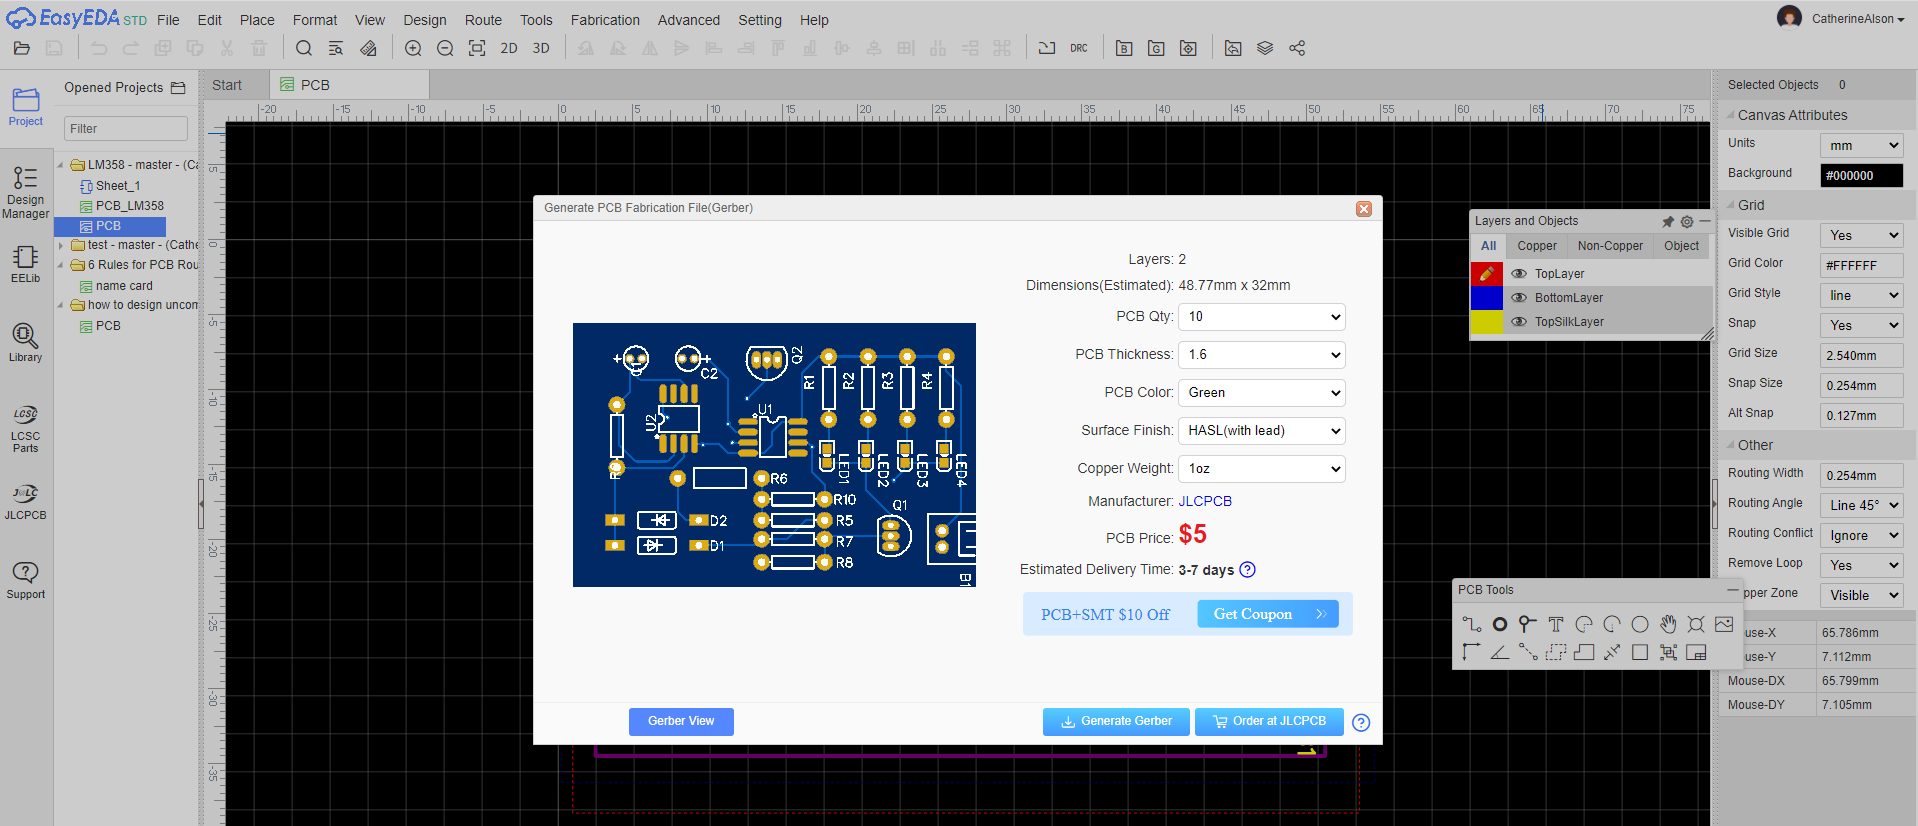 PCB Manufacture and Assembly with JLCPCB in Easier Way